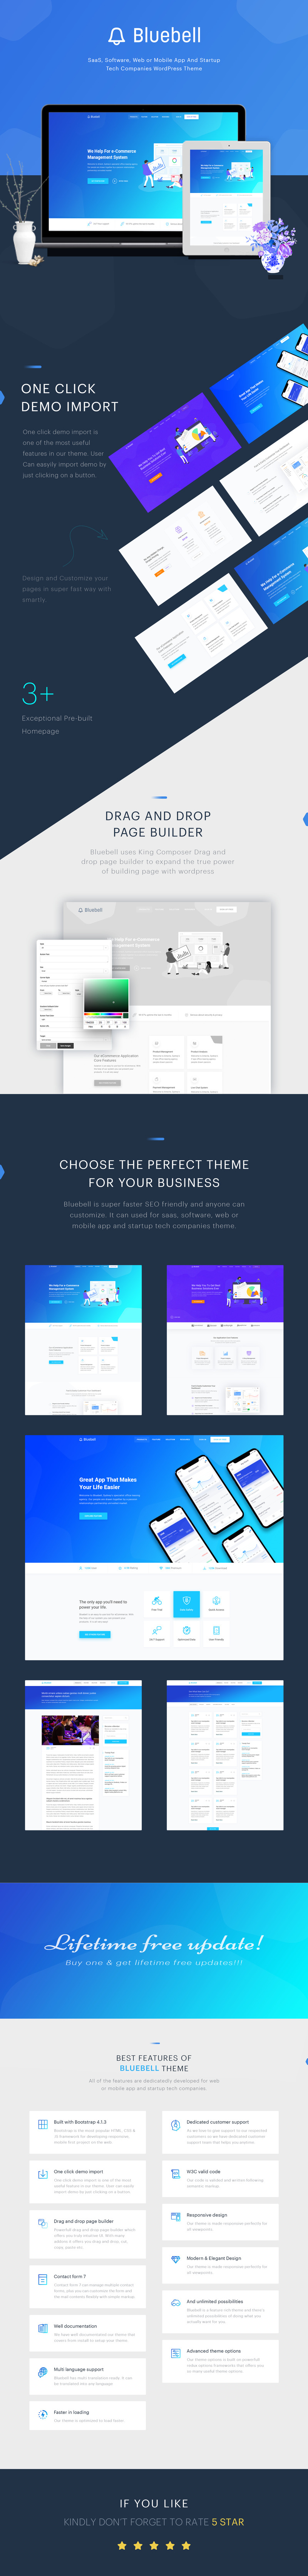 Bluebell - Software, Web App And Startup Tech Company WordPress Theme WordPress Theme - Features Image 1